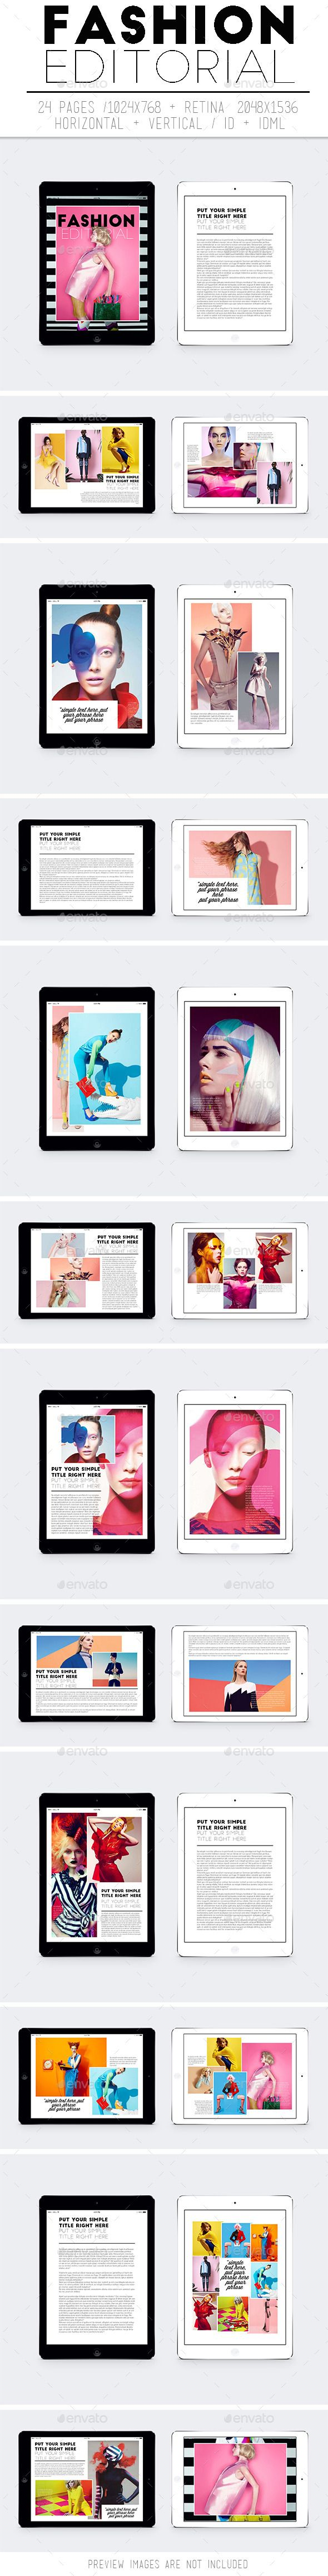 Tablet Fashion Editorial Template #emagazine Download: http://graphicriver.net/item/tablet-fashion-editorial/10658167?ref=ksioks